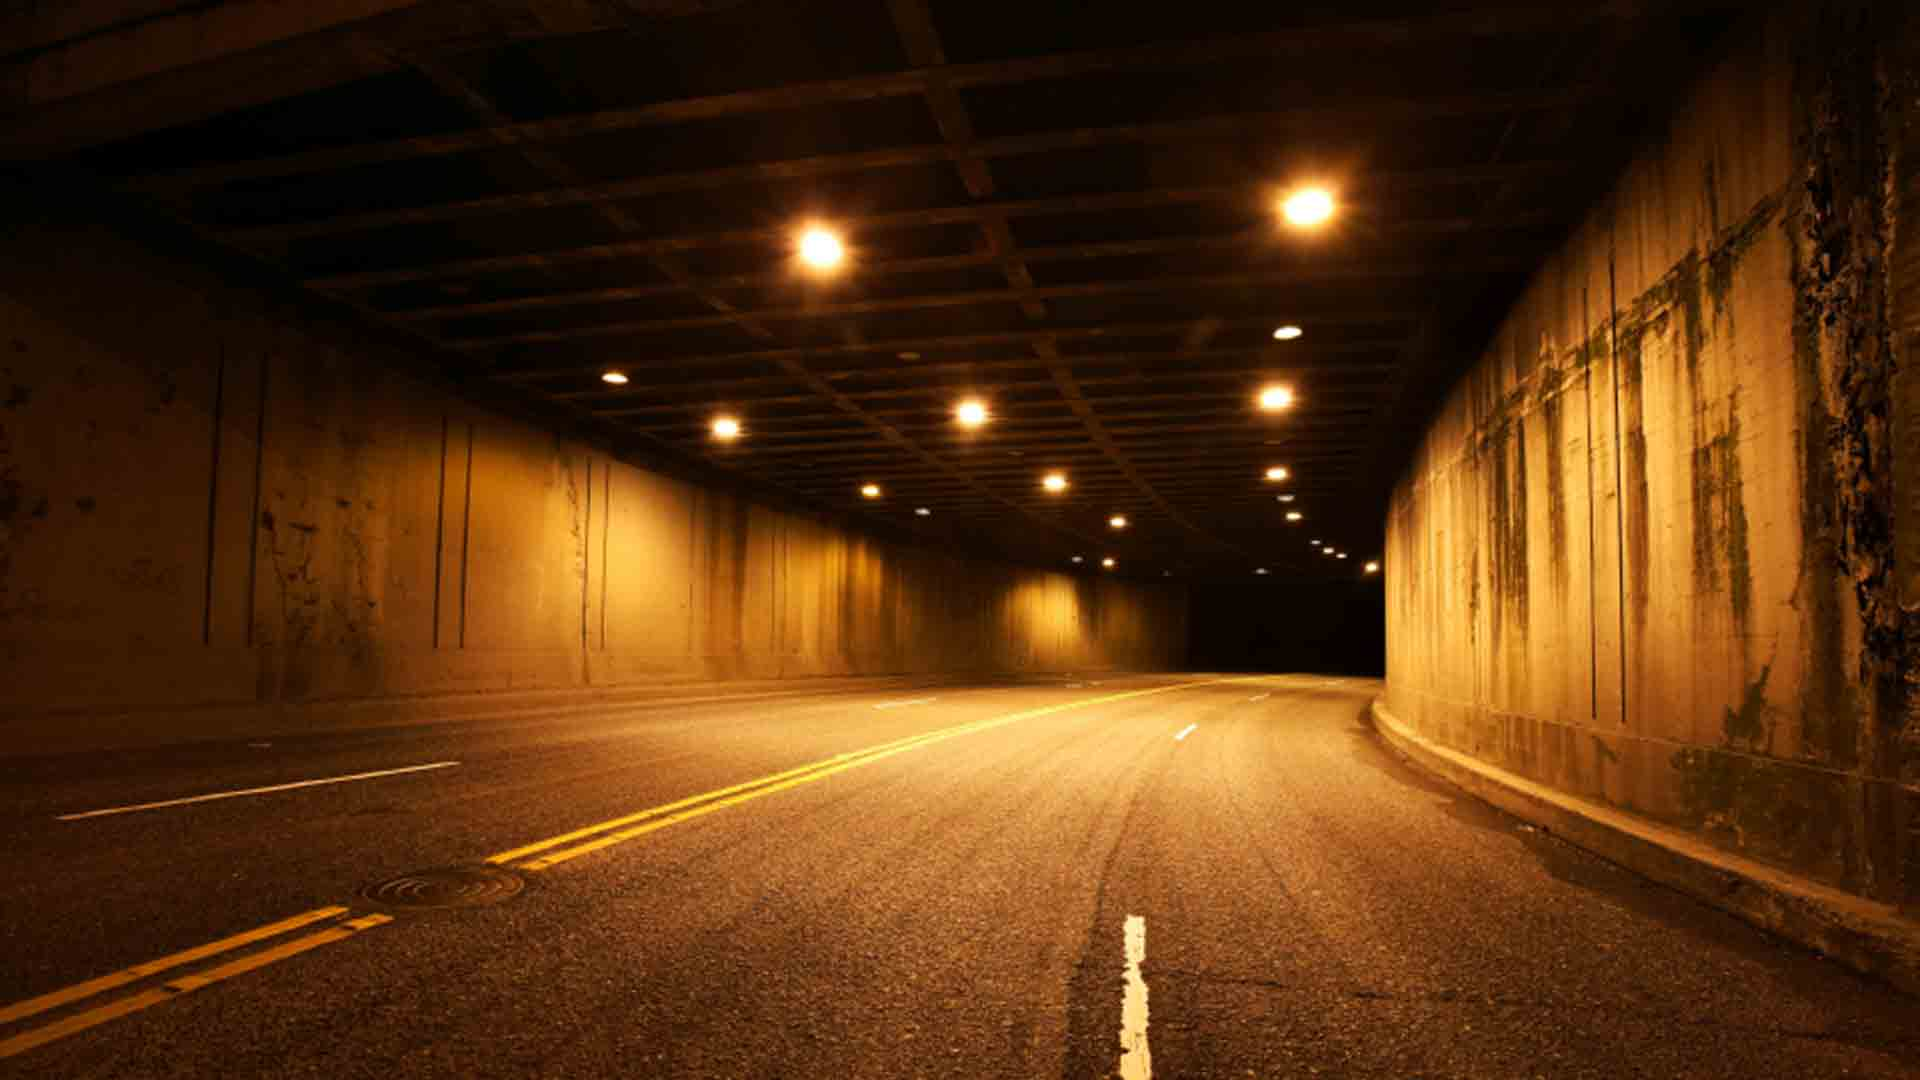 Tunnel Vision wallpaper